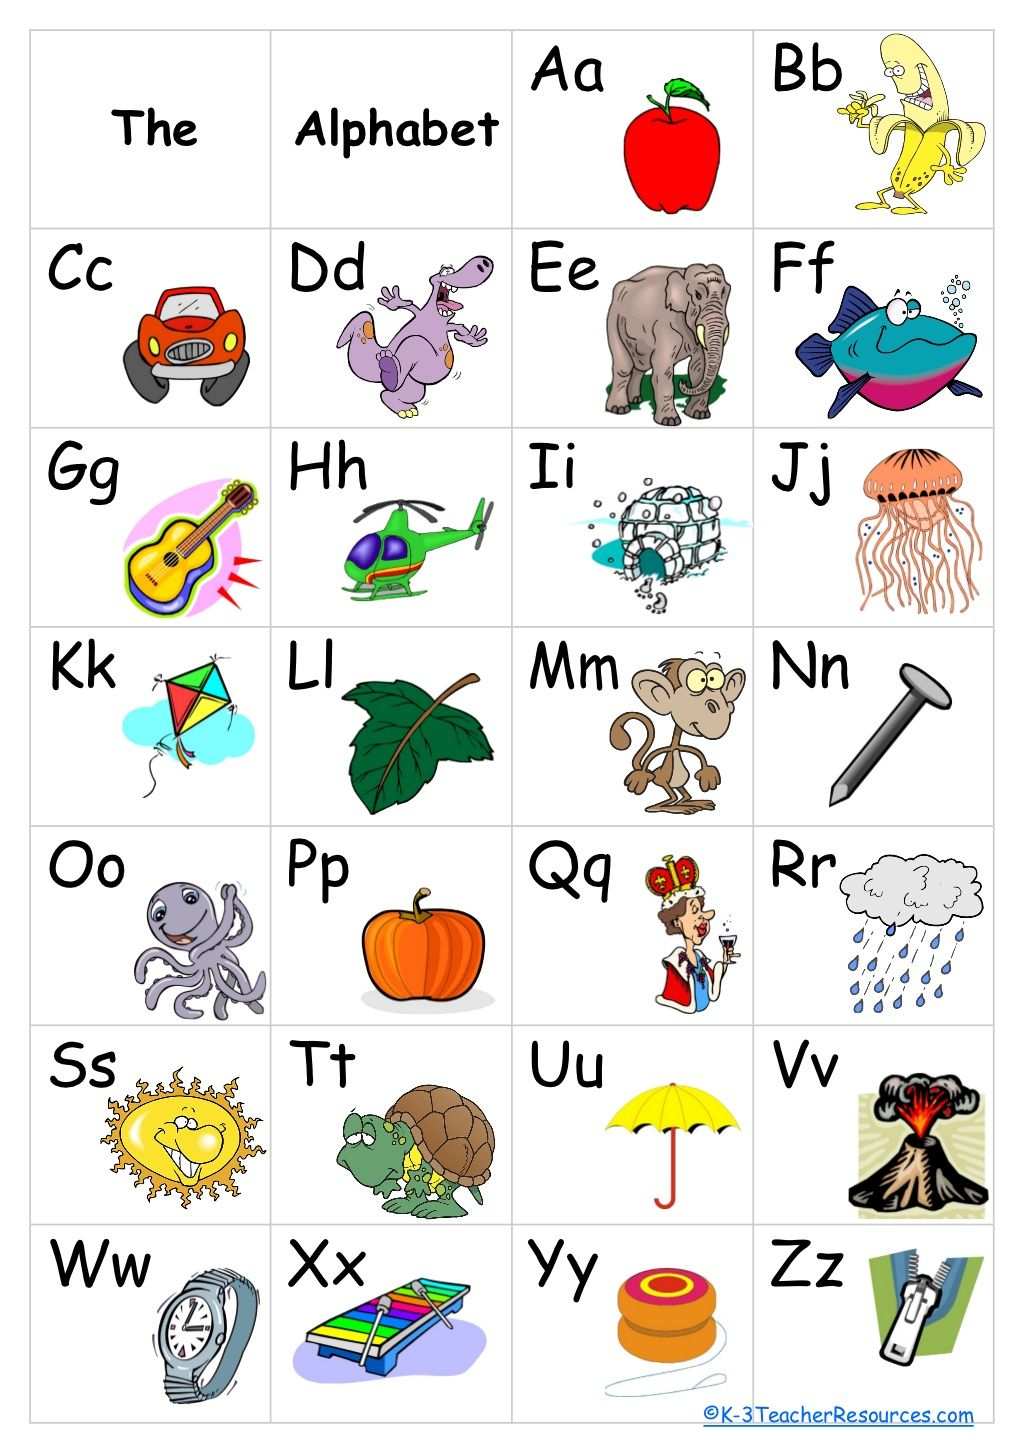 Simple Alphabet Chart By K3teacherresources Via Slideshare